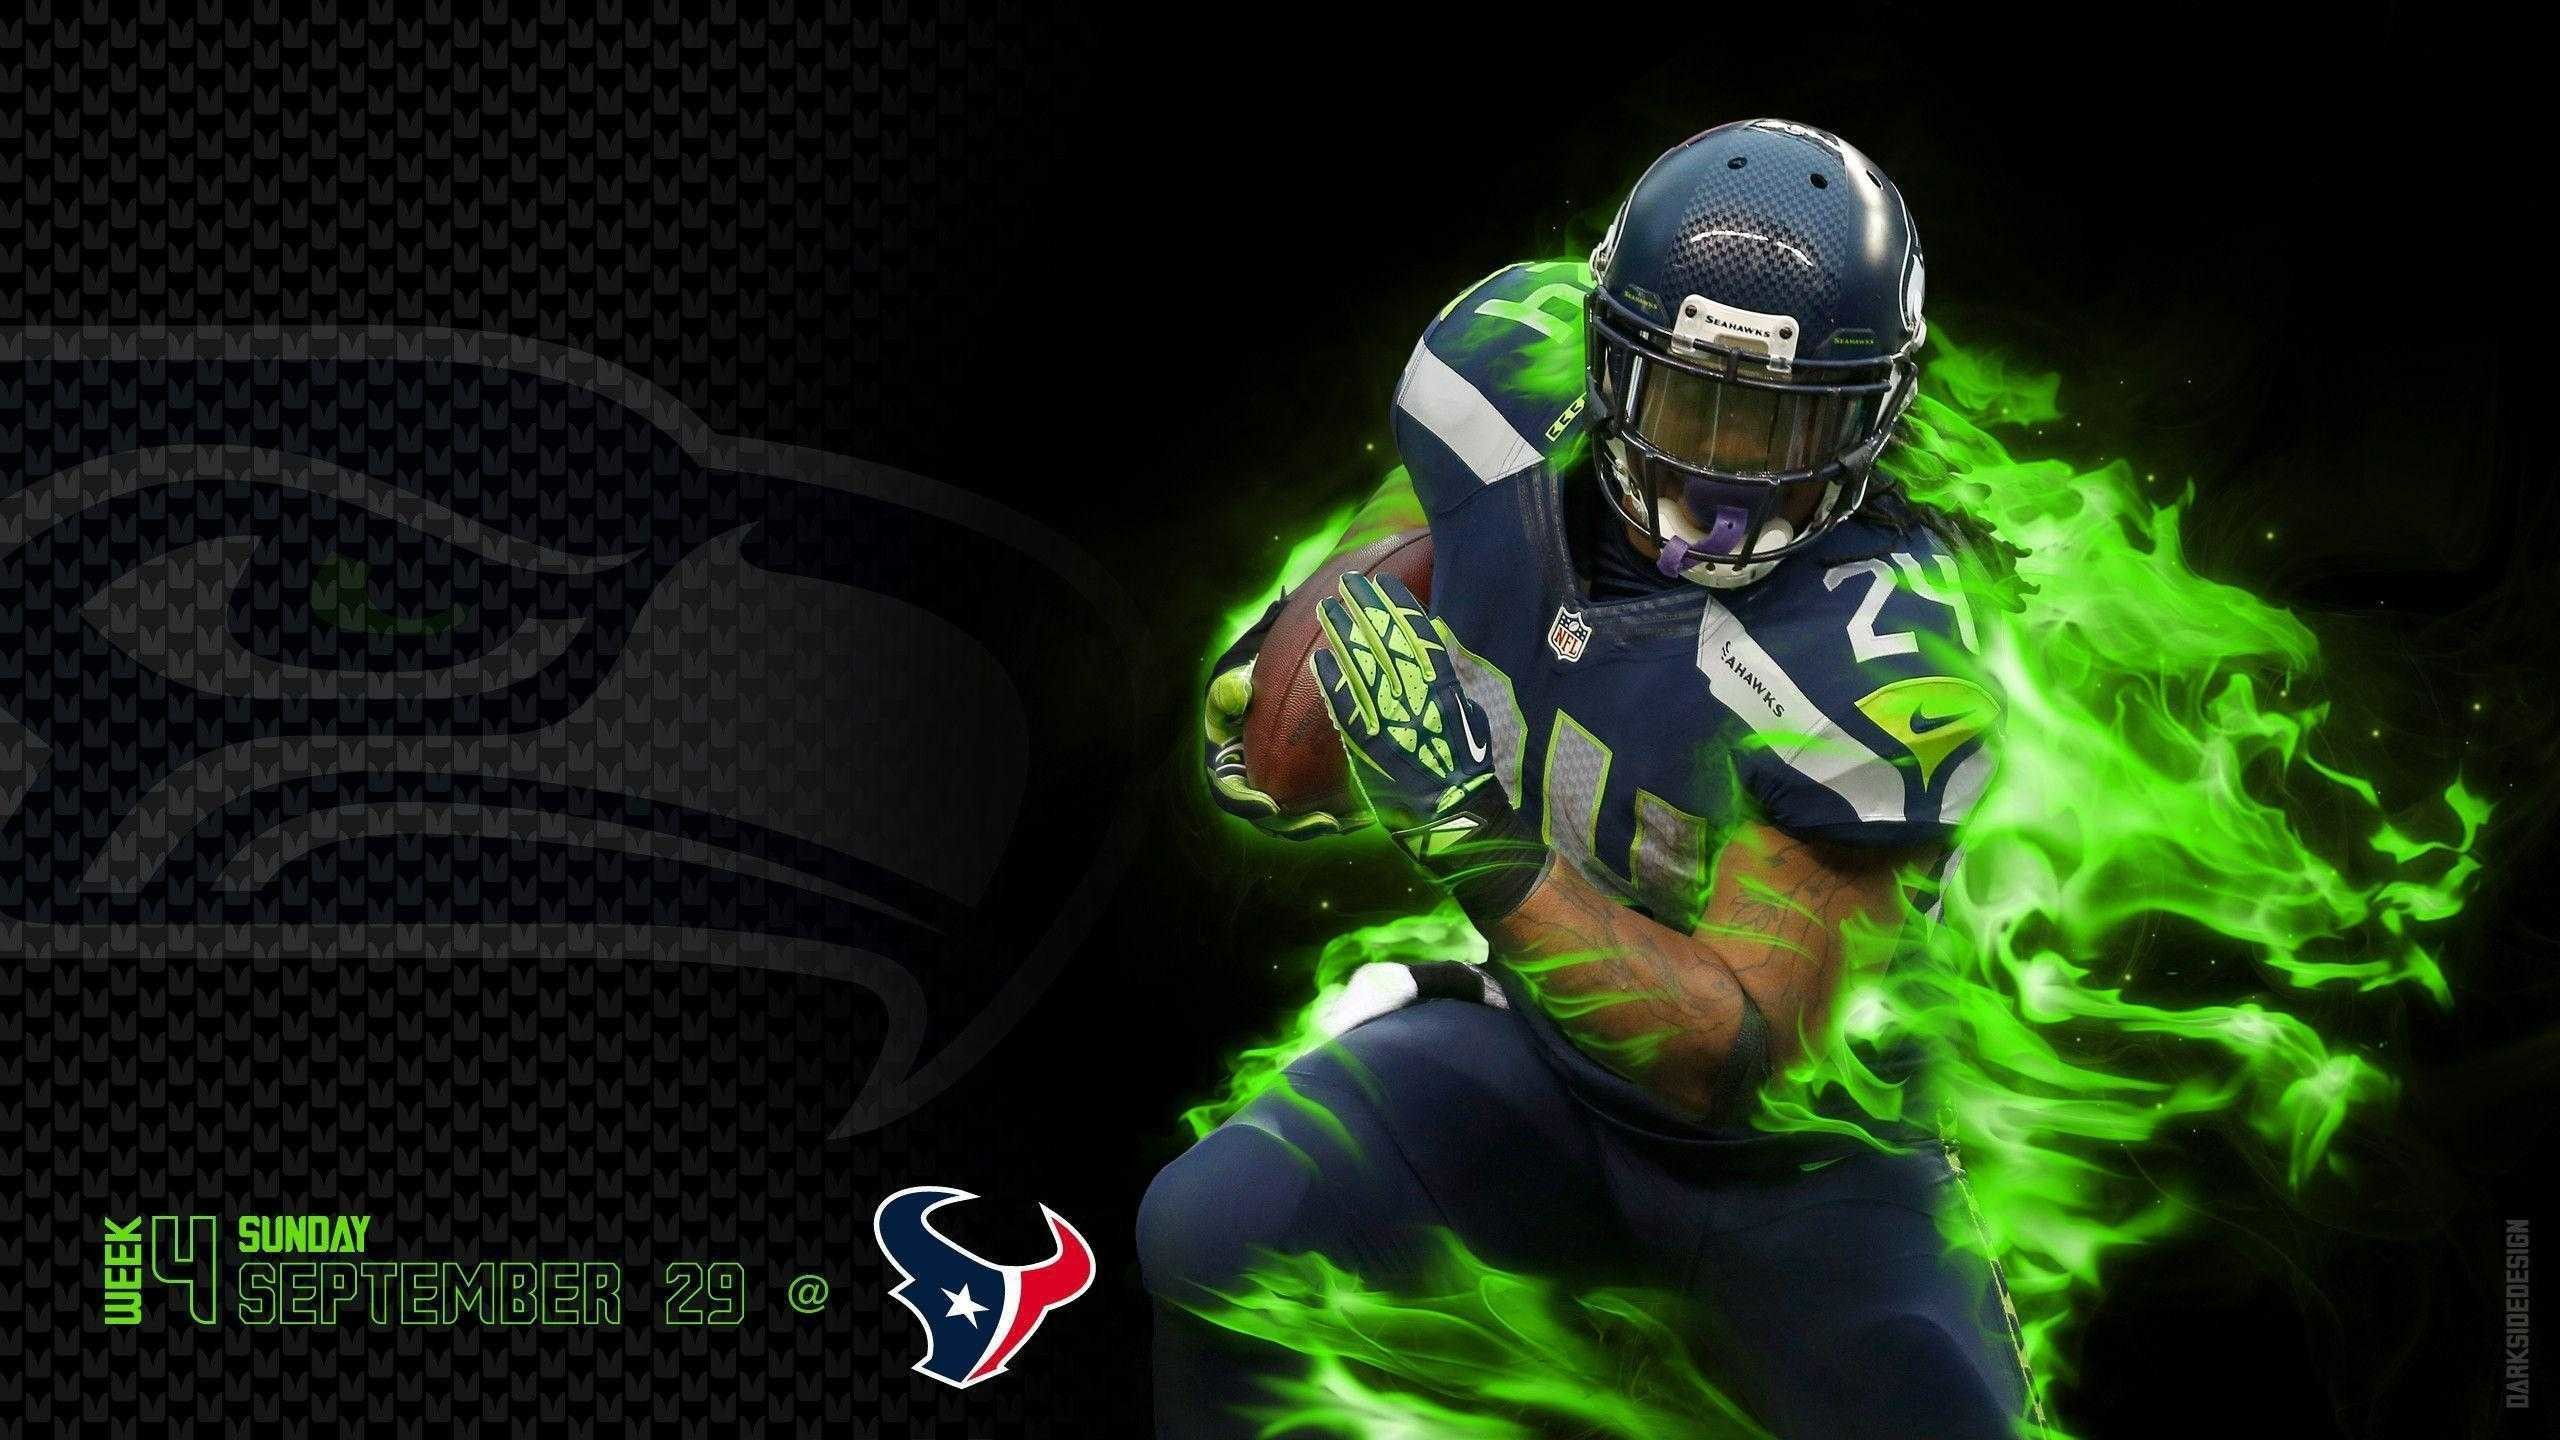 Cool Nfl Football Wallpapers 72 Background Pictures 100 cool boys dps & profile pictures for whatsapp & facebook. pavbca com